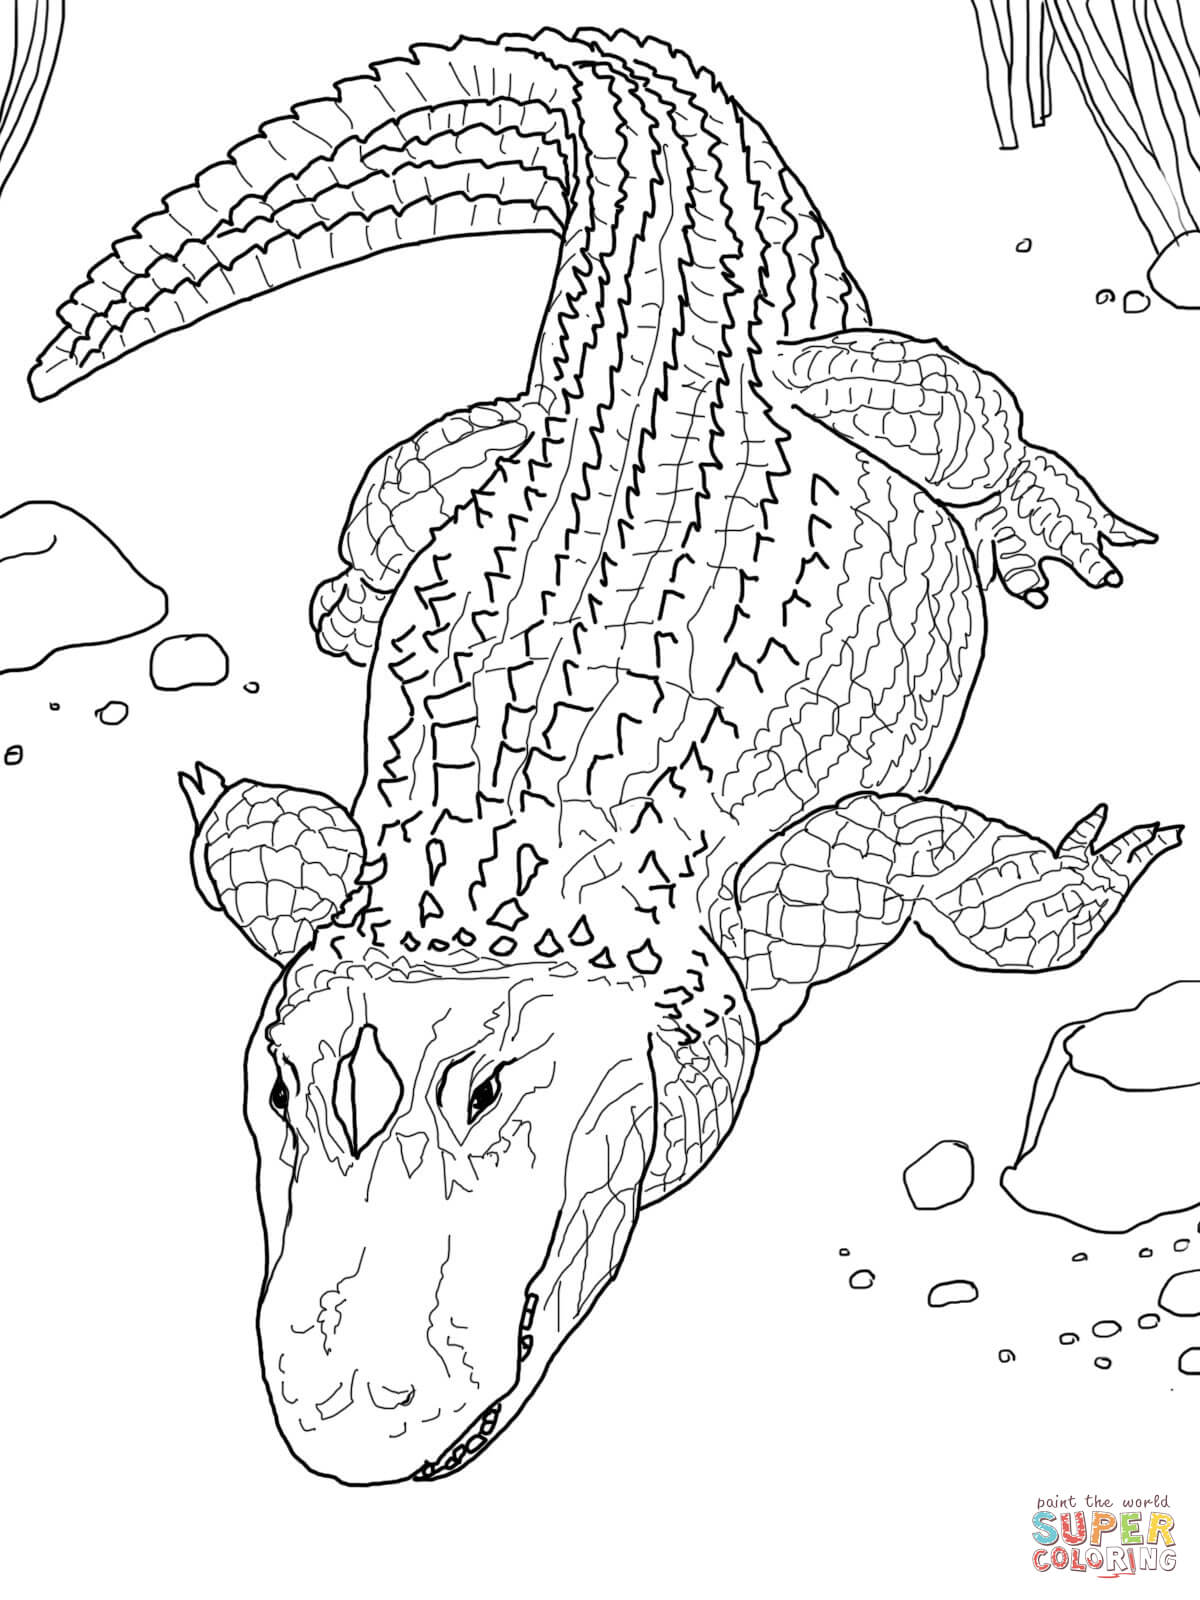 1200x1600 American Alligator Or Common Alligator Coloring Page.jpg (1200